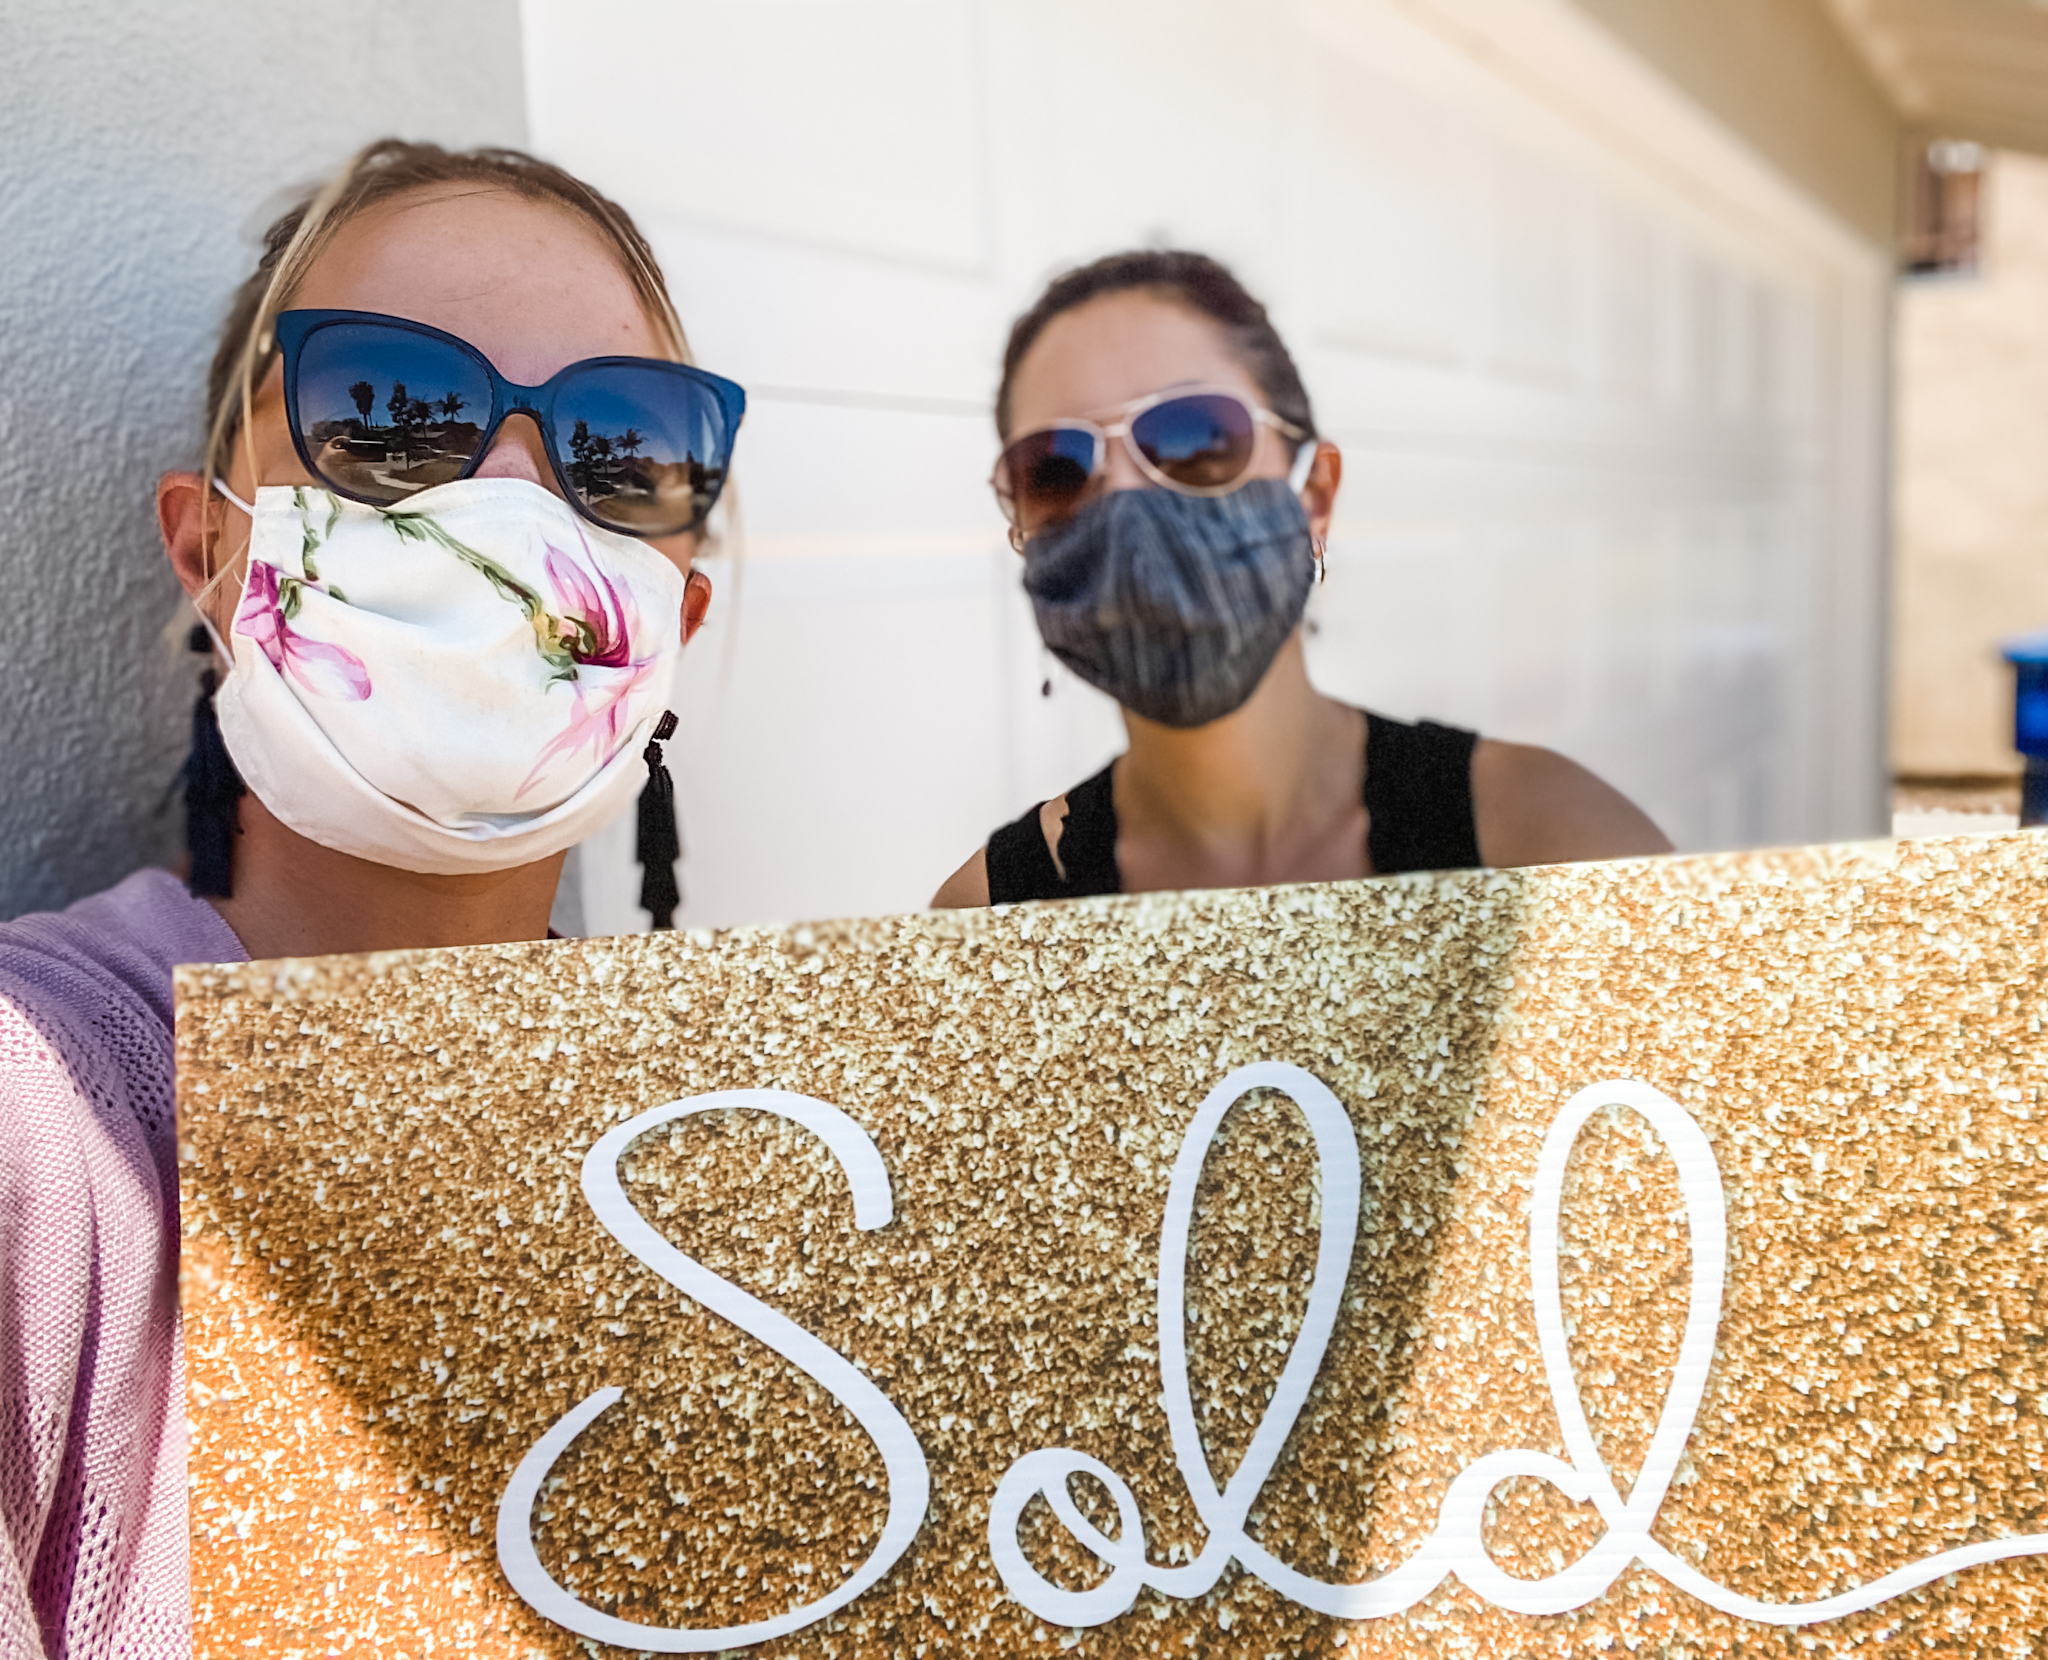 Masked real estate agents with sold sign